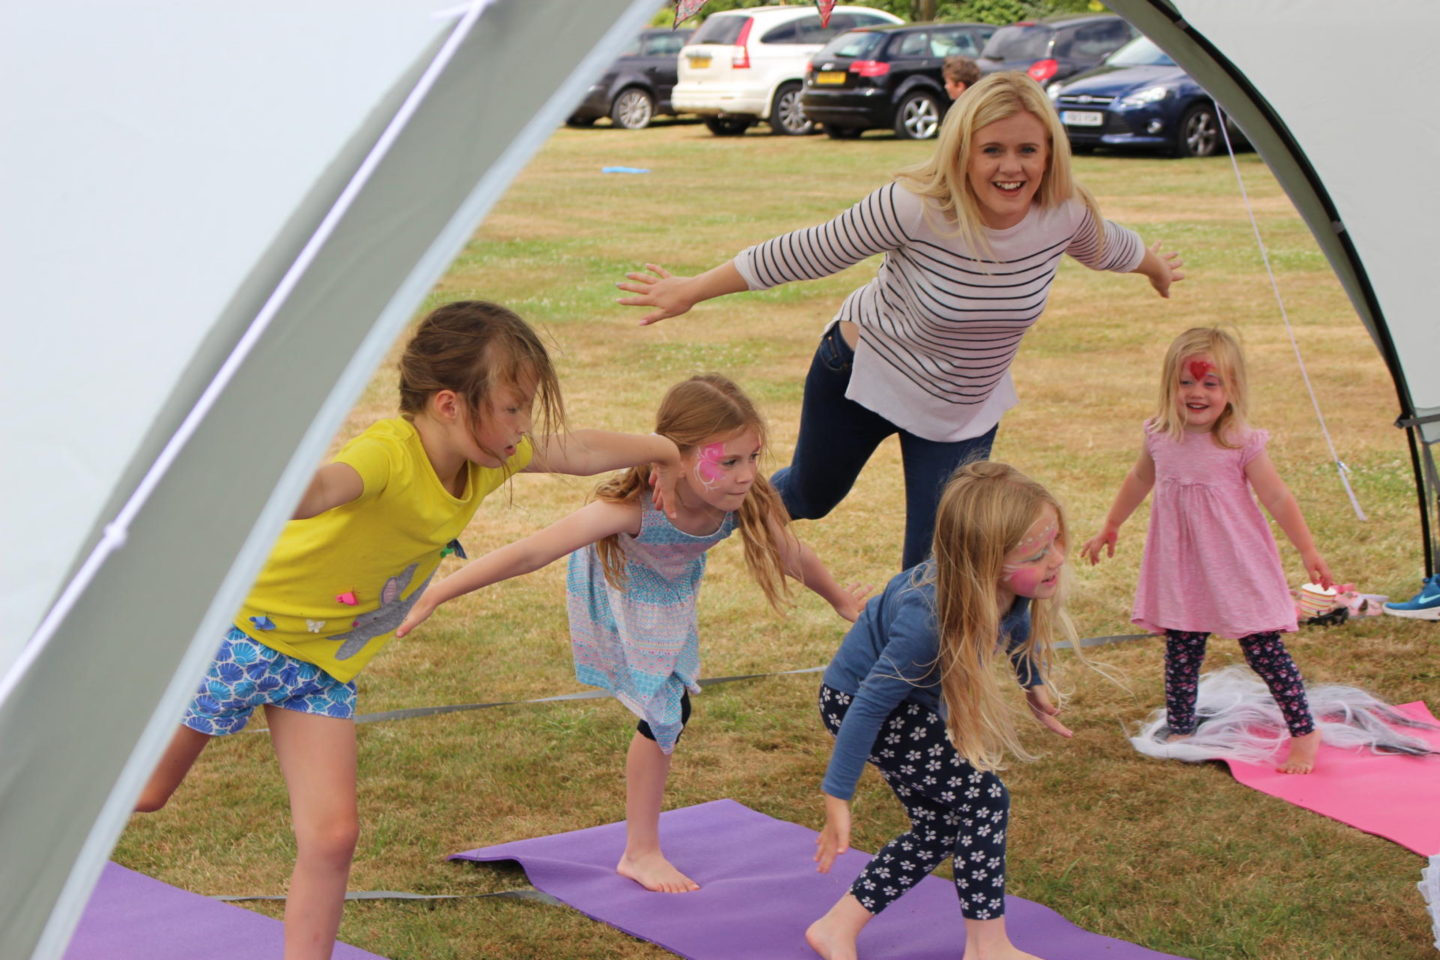 How to Get Fit & Have Fun as a Busy Mum